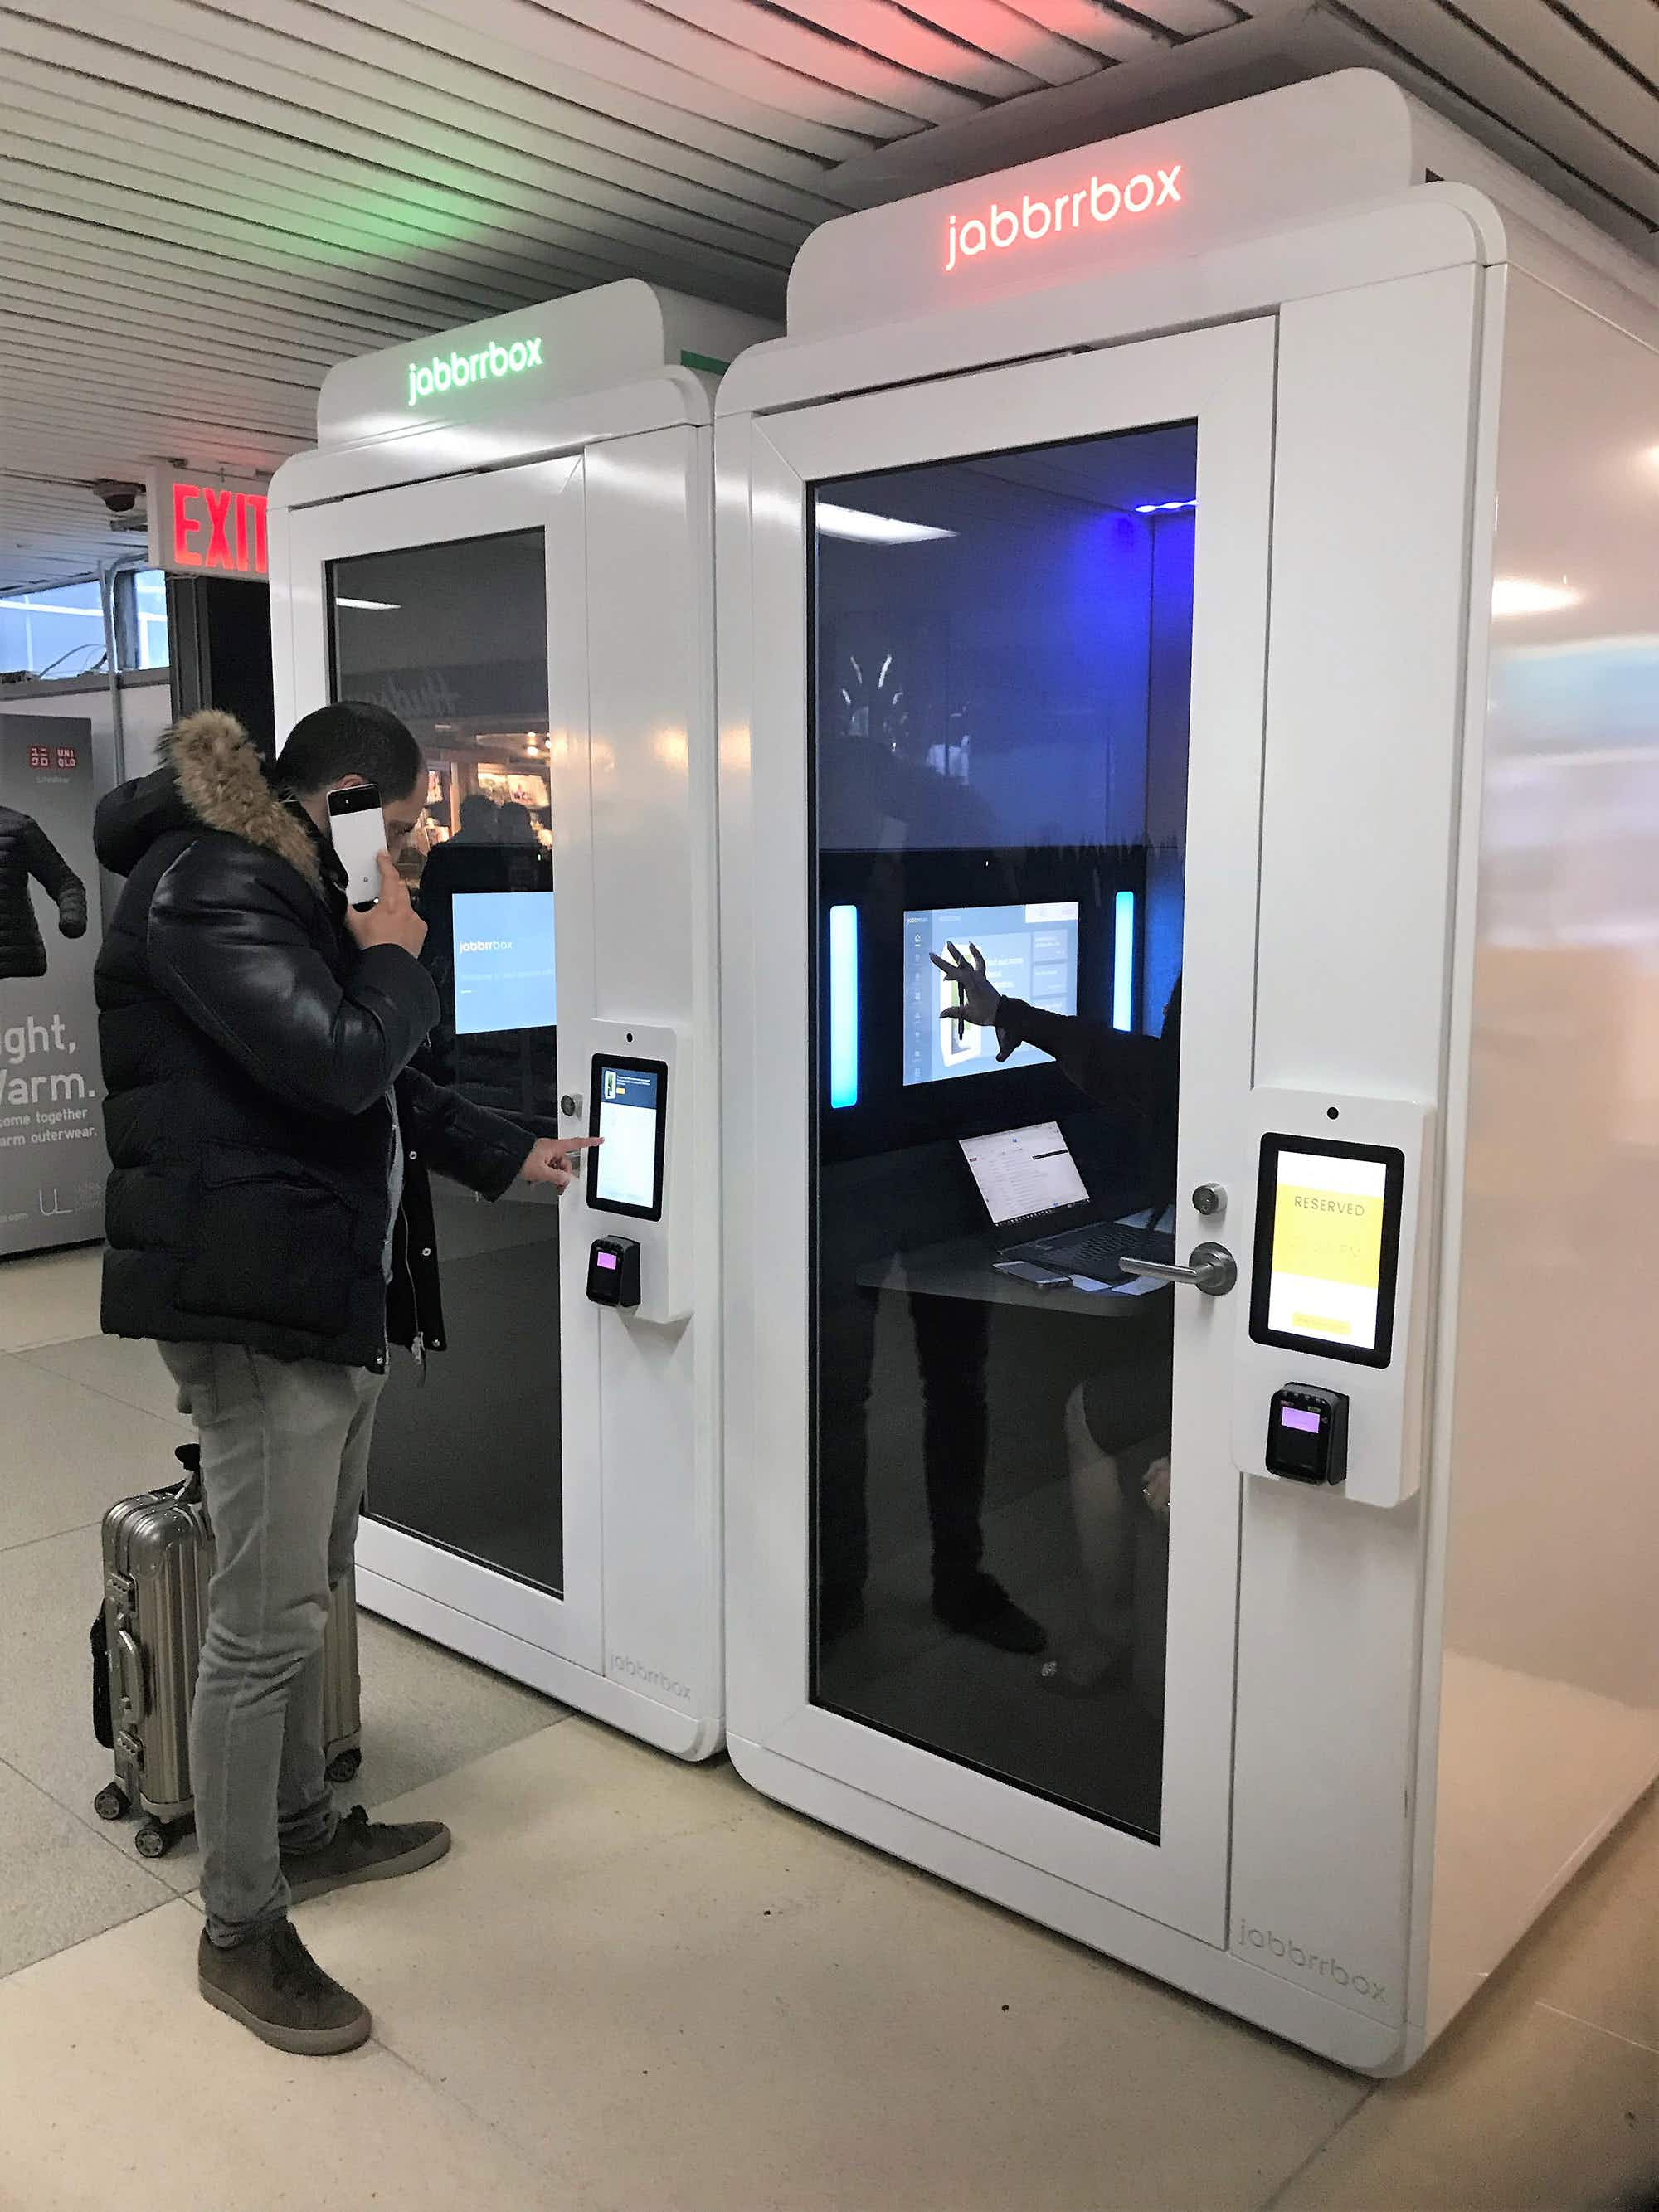 One NYC airport is introducing private booths where you can work in peace